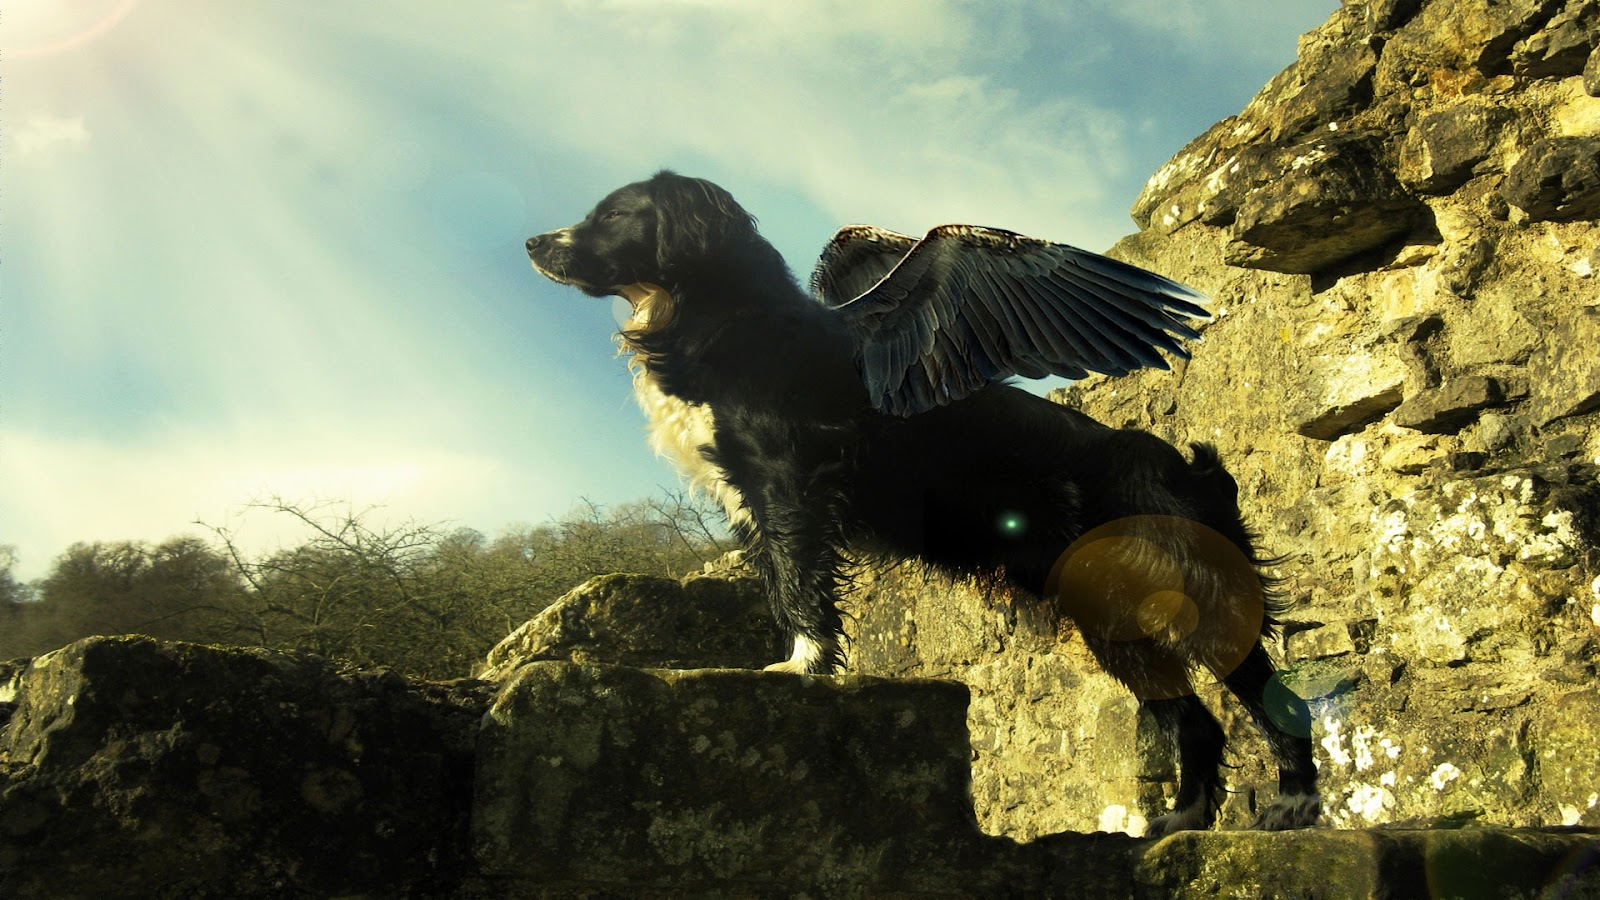 Cool Dog with Wings Design Wallpapers Backgrounds | Dogs Wallpapers Backgrounds